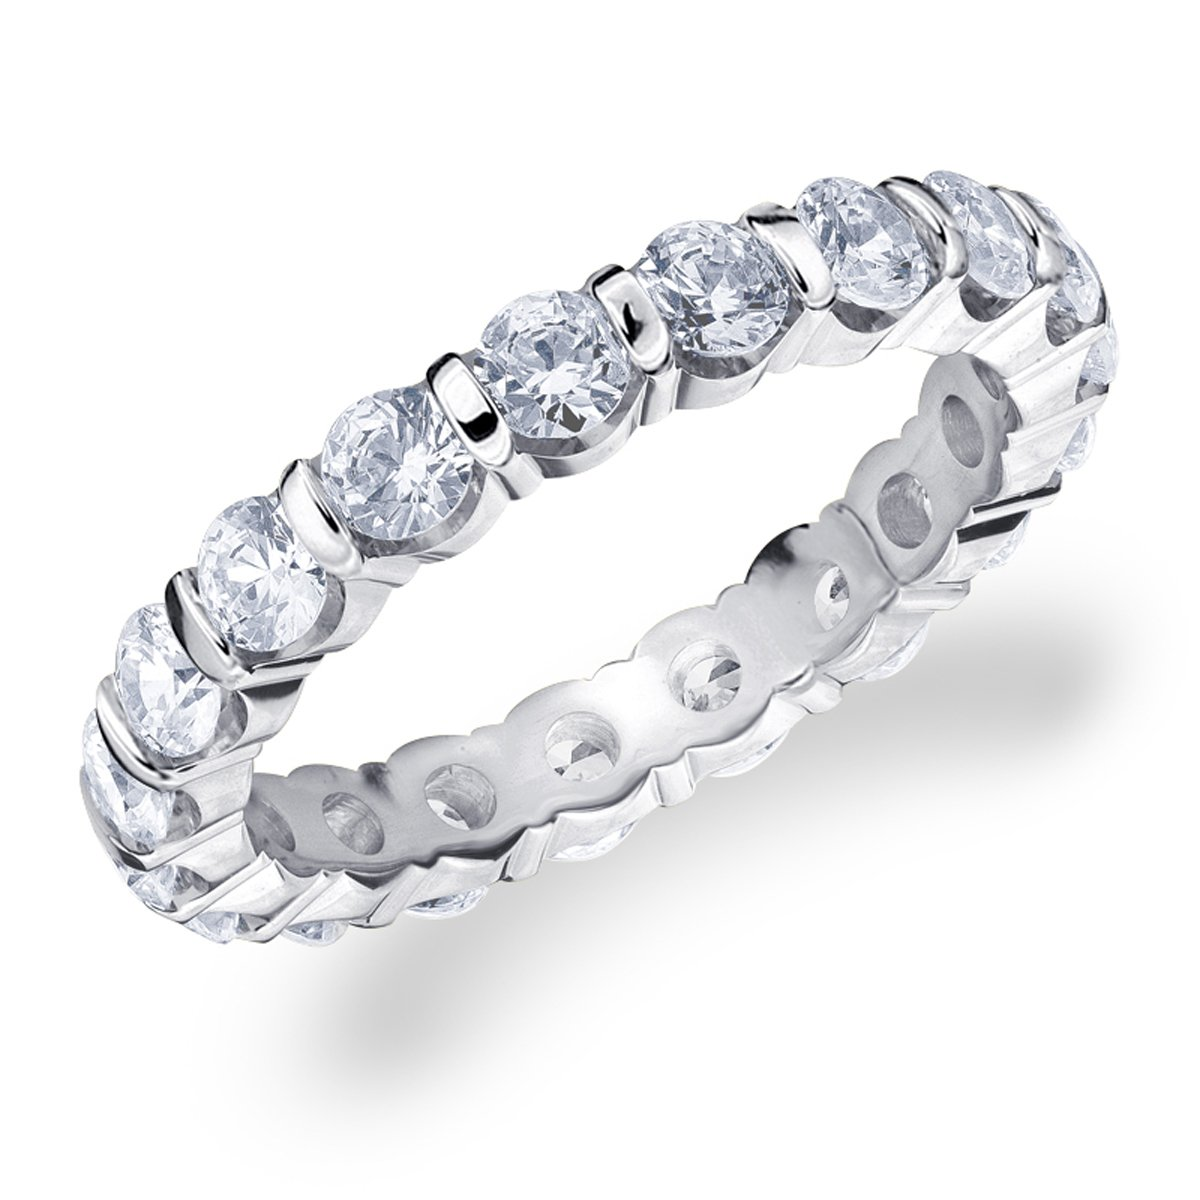 2 CT Bar Set Lab Grown Diamond Eternity Ring in 14K White Gold, Sparkling in E-F Color and VS Clarity- Finger Size 7.5